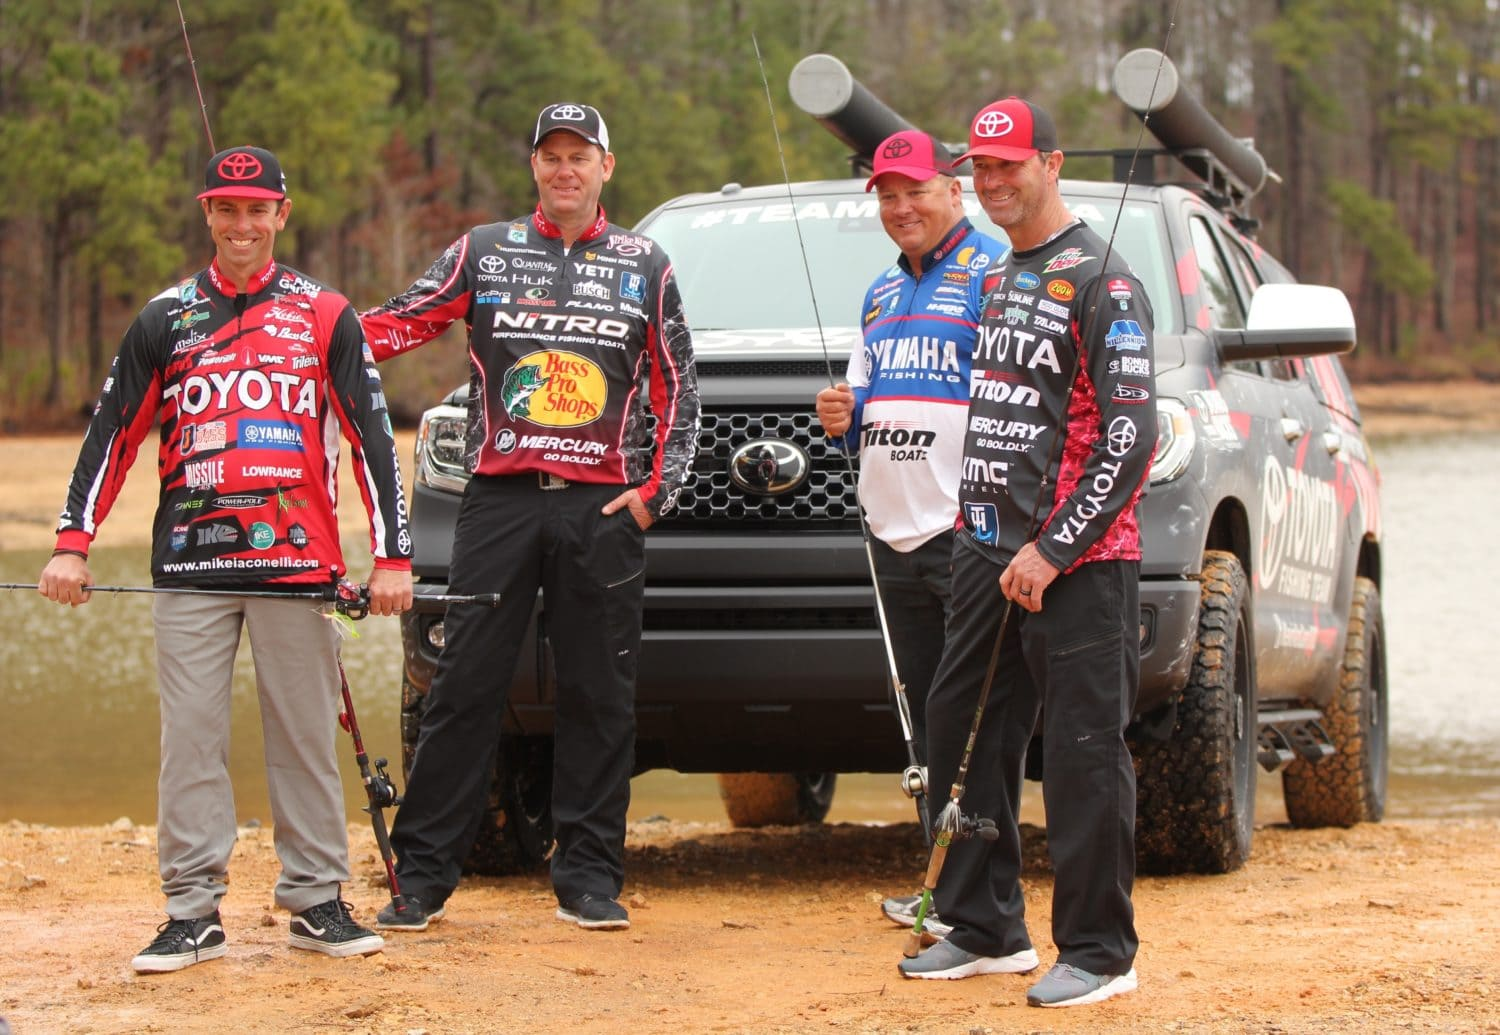 Bass Fishing Texas Style At Toyota Bassmaster Texas Fest